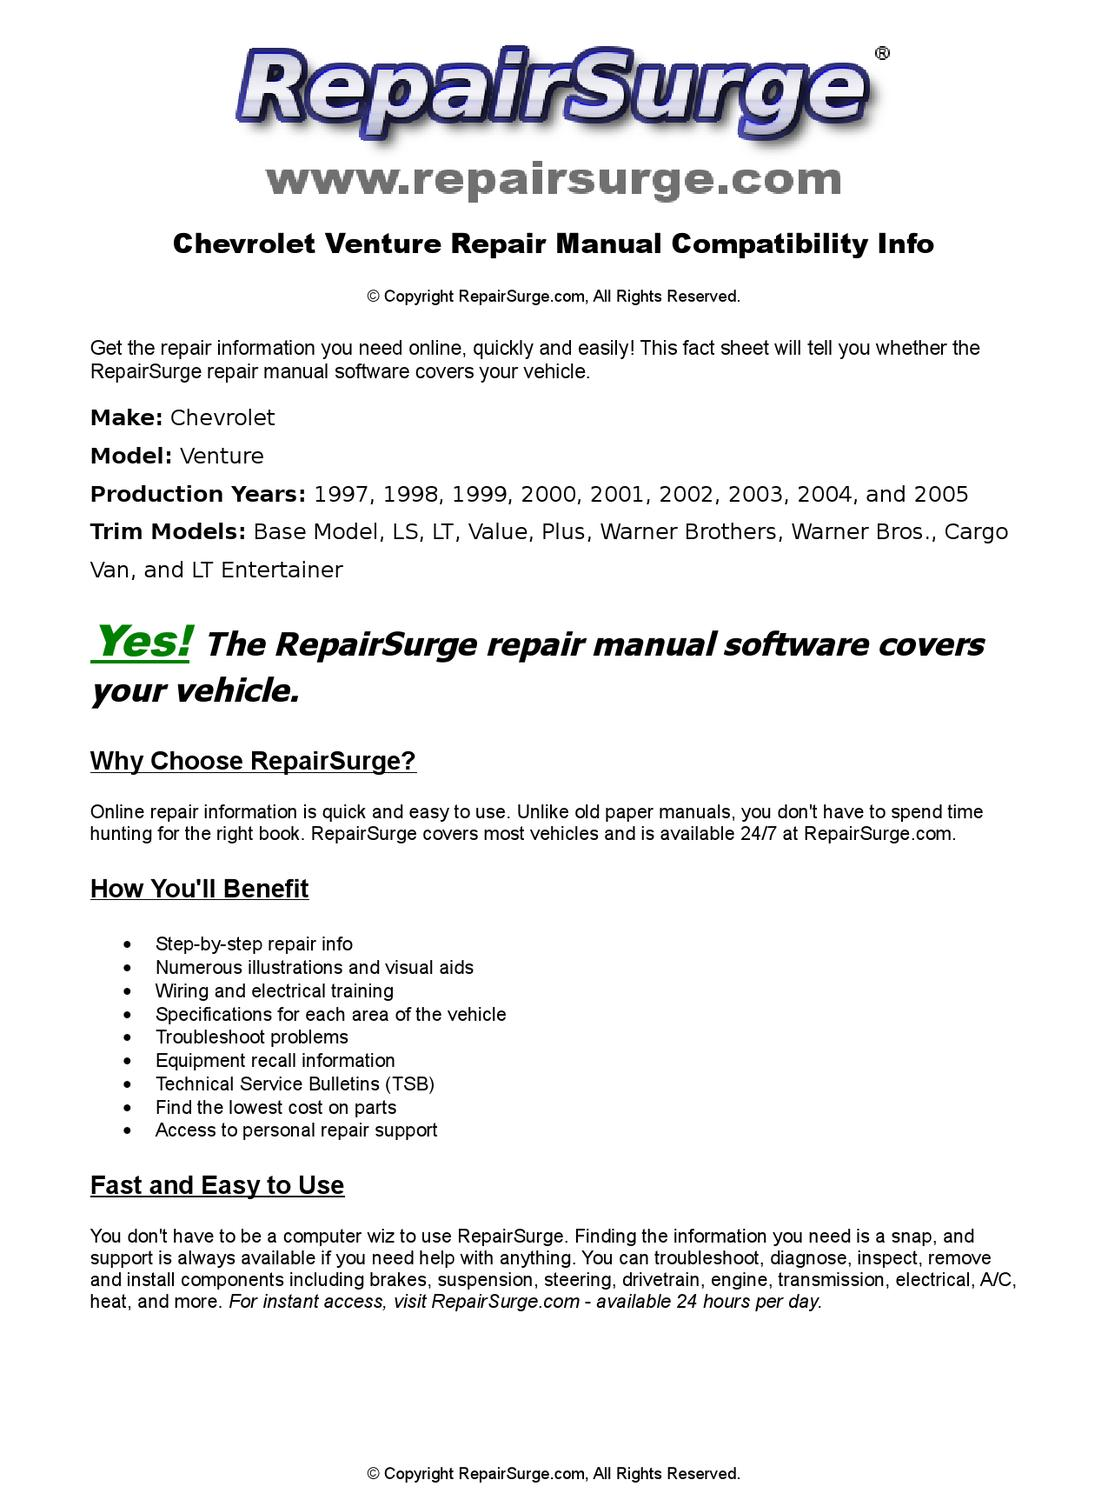 Chevrolet Venture Online Repair Manual For 1997, 1998, 1999, 2000, 2001,  2002, 2003, 2004, and 2005 by RepairSurge - issuu